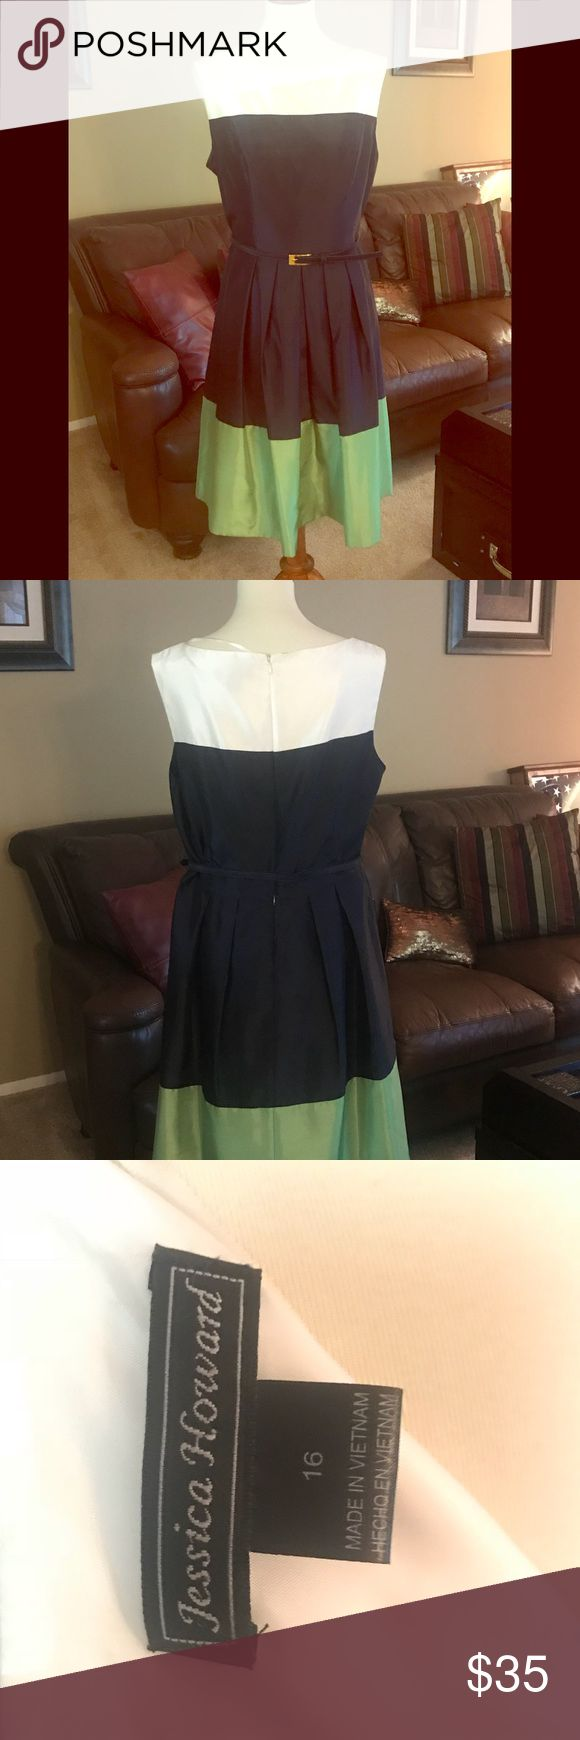 Dress Sleeveless color block dress has belted waist and fuller skirt. The chintz material and structure of this dress gives it a timeless look. Colors are white, navy blue and chartreuse.  NWOT, never worn, Smoke Free home. 35 Jessica Howard Dresses Midi